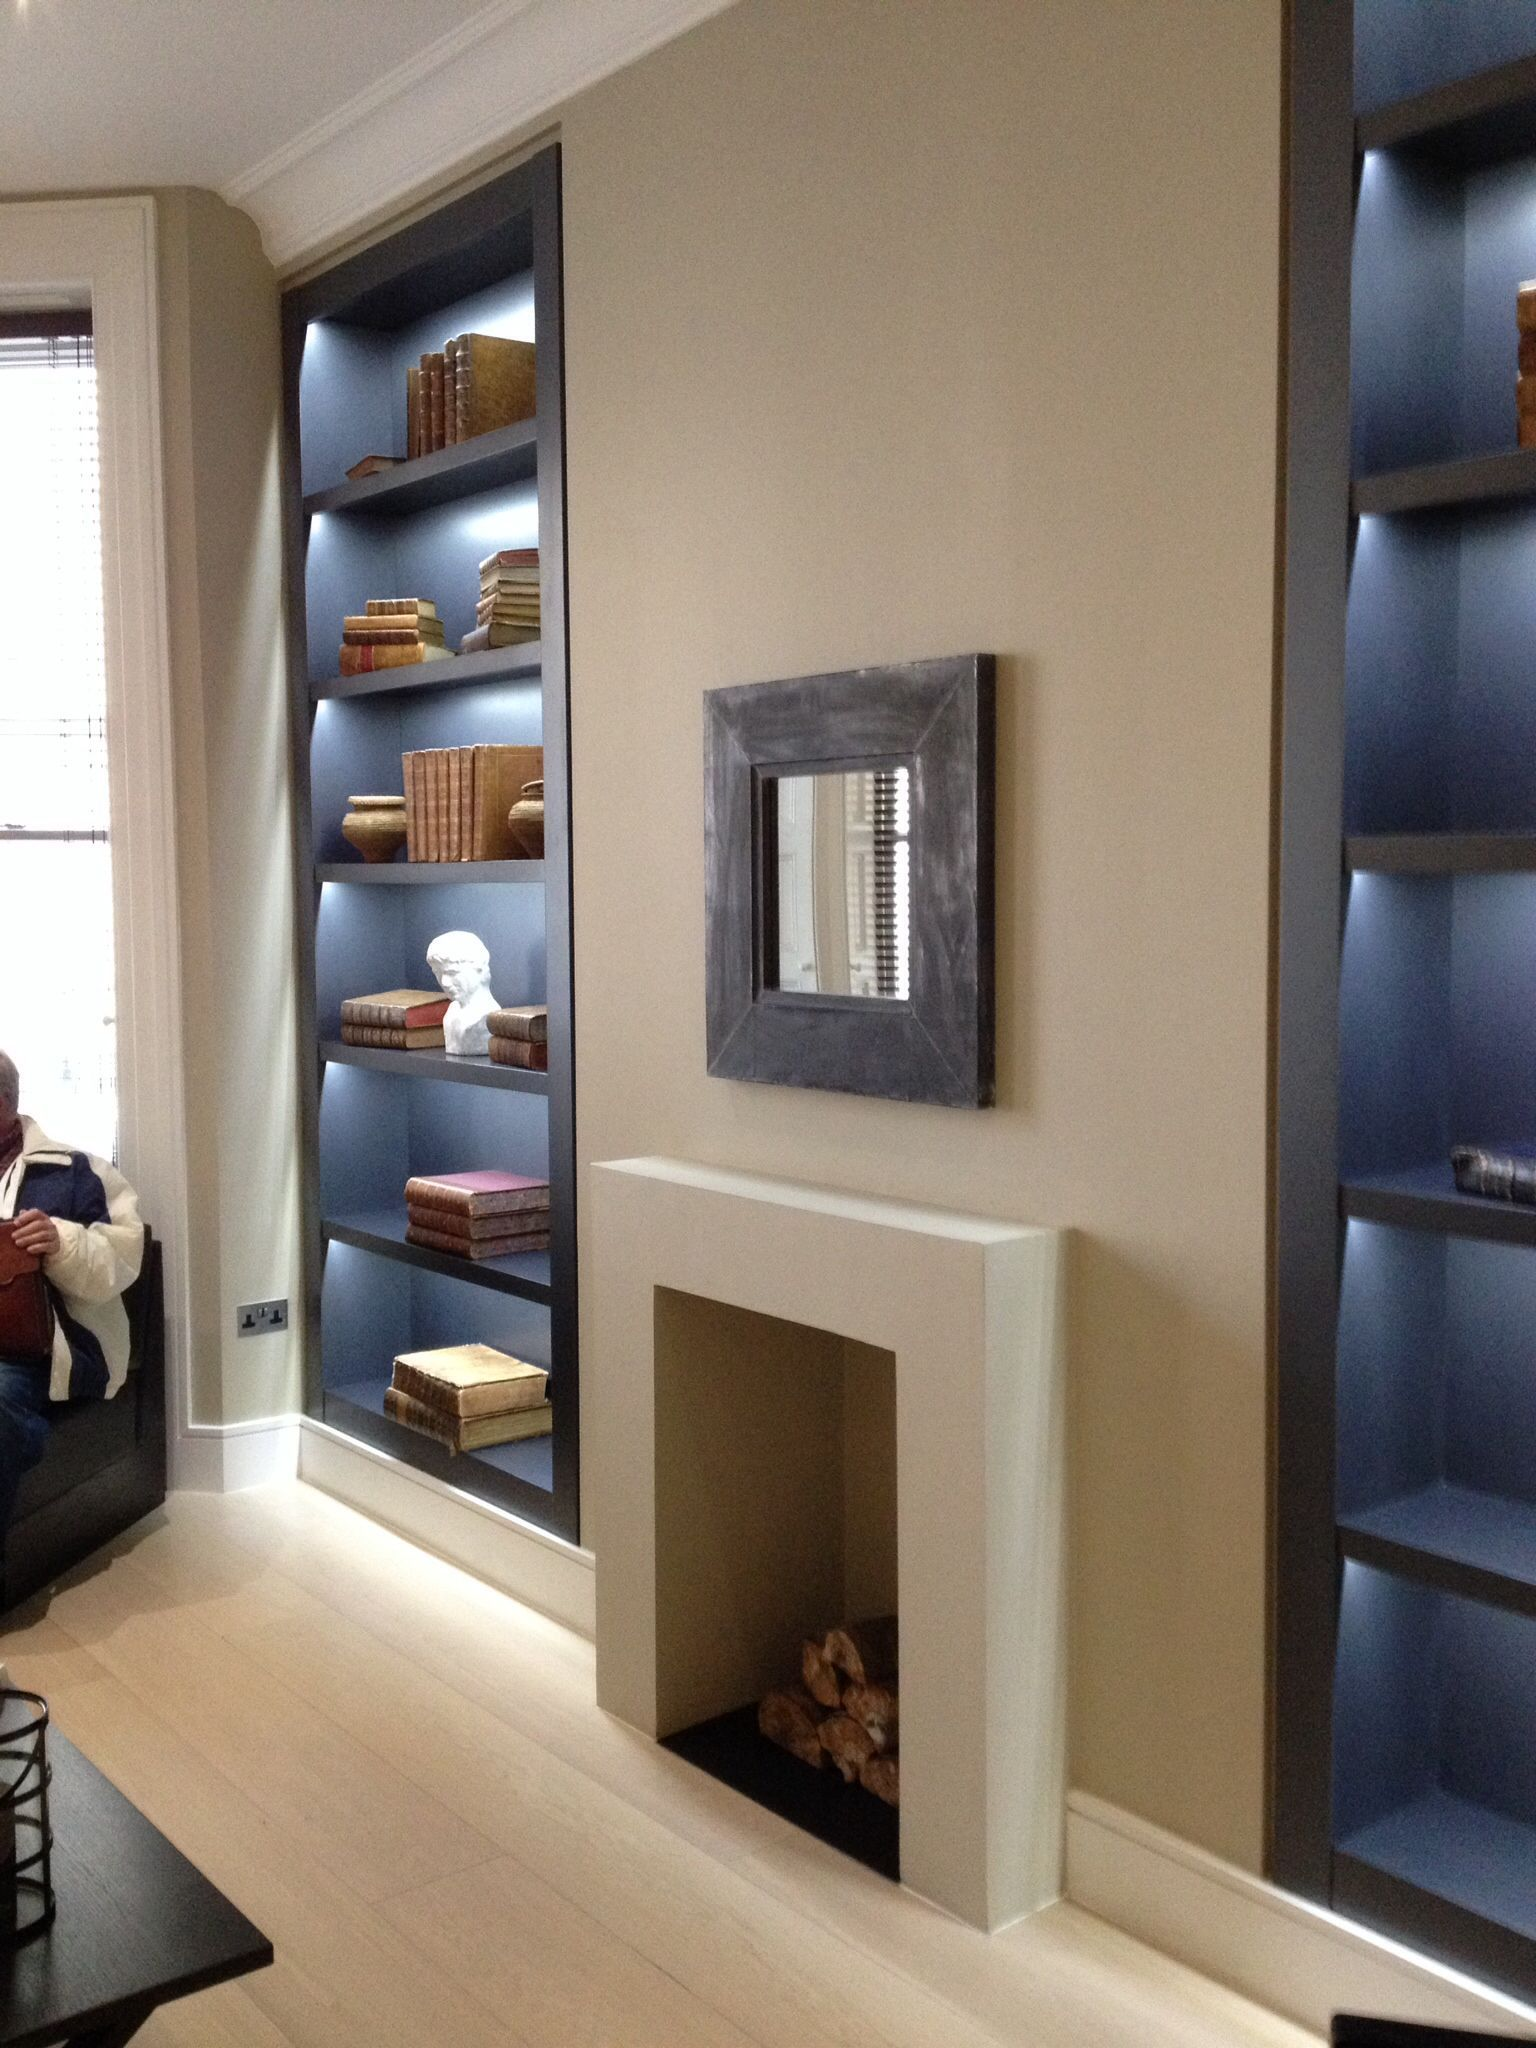 48 Comfy Wooden Tiles Design Ideas For Living Room | Alcove ... on design ideas for columns, design ideas for garages, design ideas for tables, design ideas for nooks, design ideas for shelves, design ideas for empty spaces, design ideas for porches, design ideas for courtyards, design ideas for bedrooms, design ideas for doors, design ideas for kitchens, design ideas for corners, design ideas for cabinets, design ideas for closets, design ideas for basements, design ideas for bathrooms,